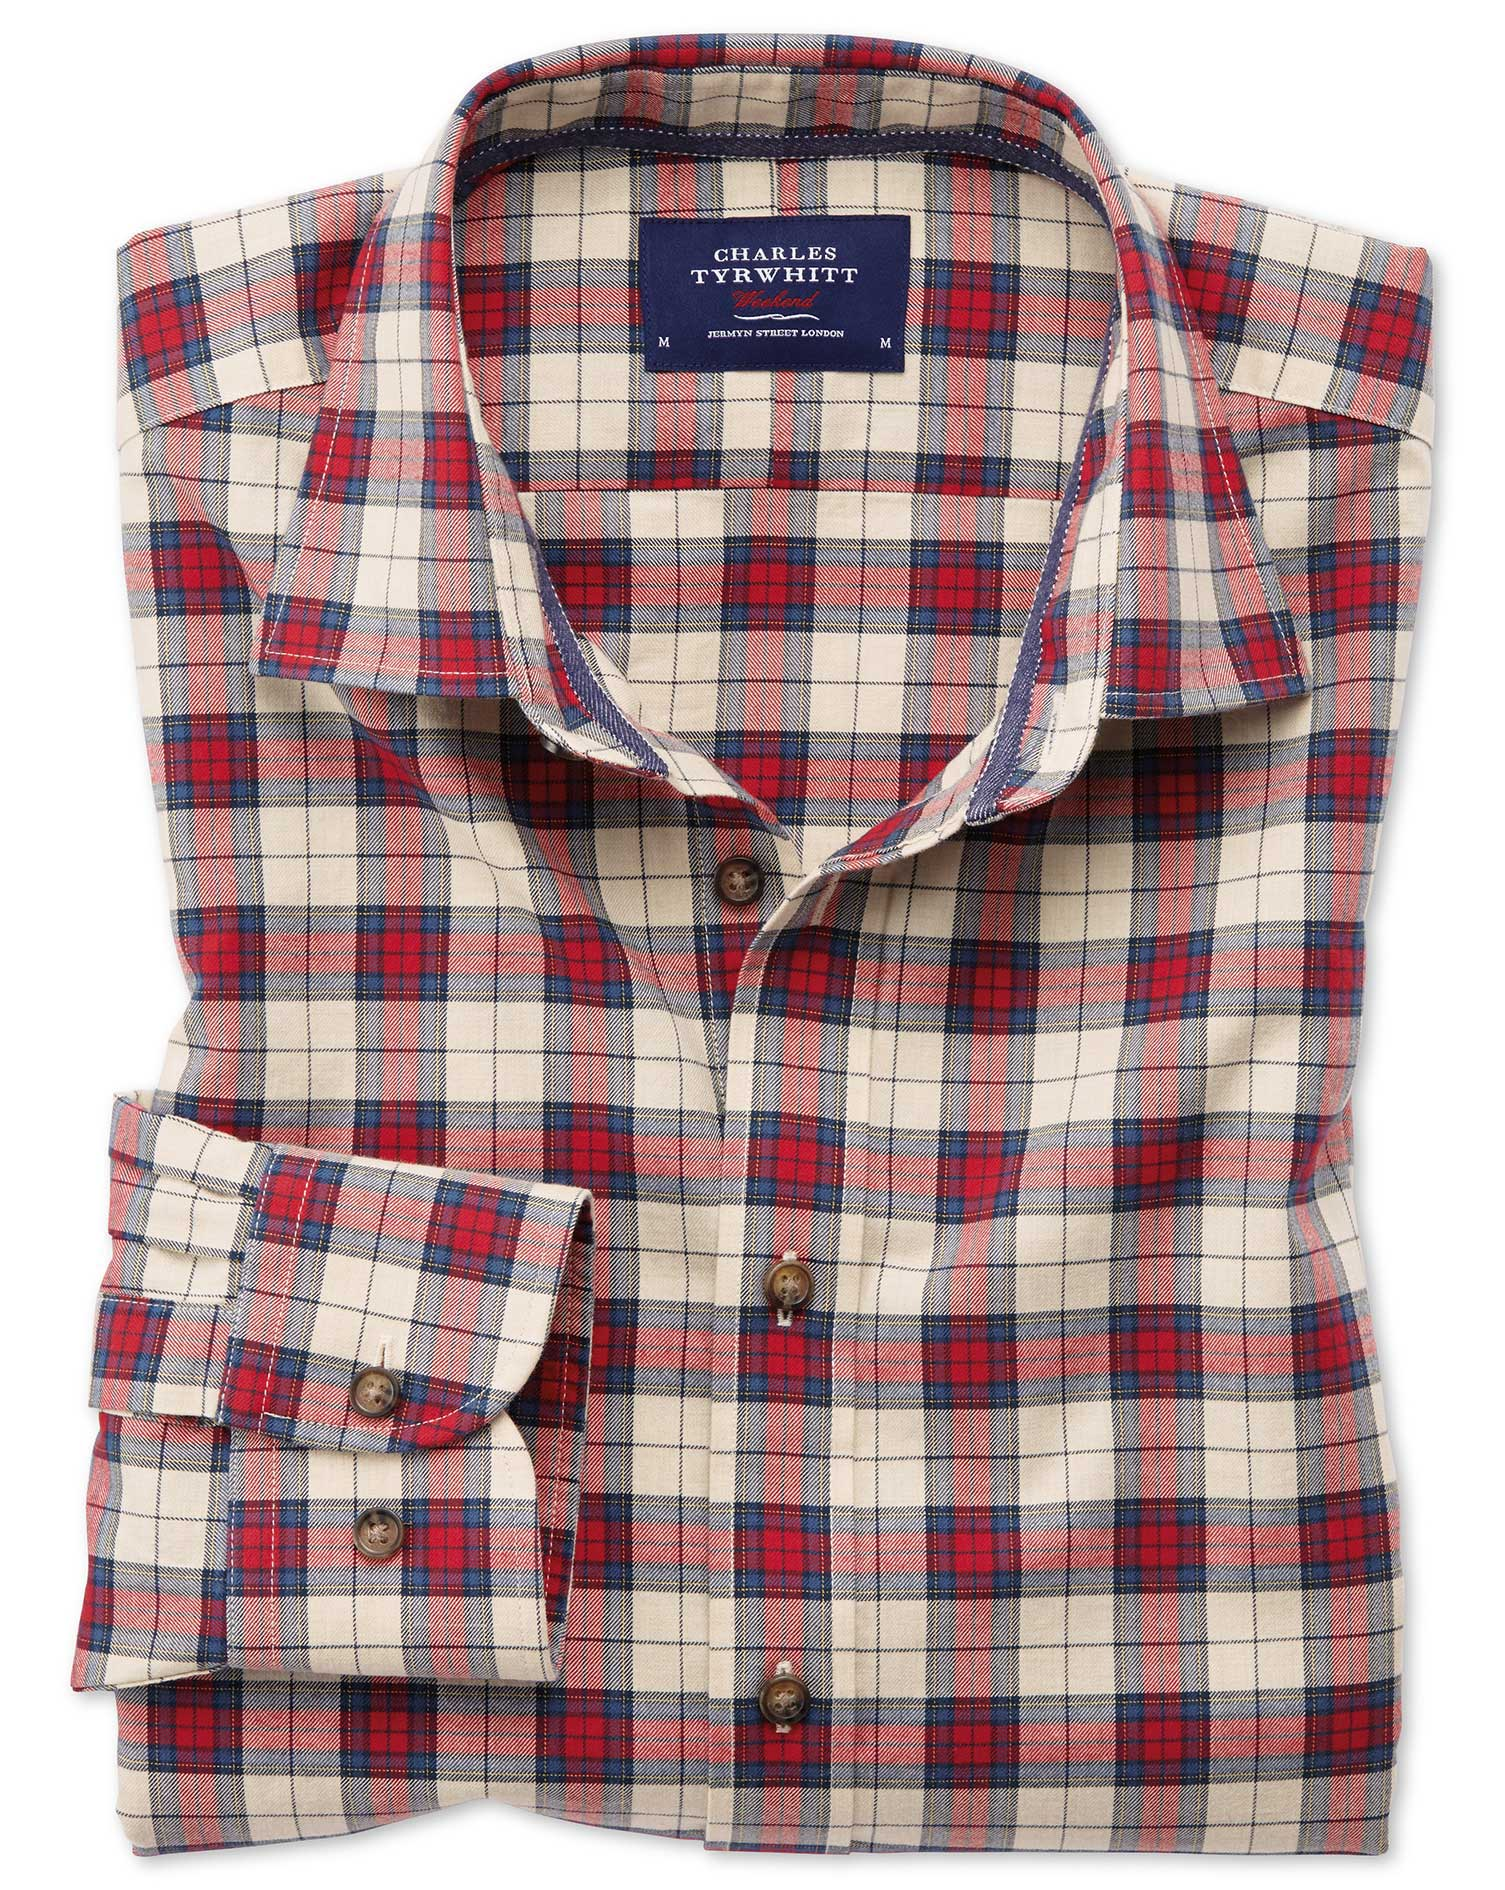 Classic Fit Heather Tartan Red Check Cotton Shirt Single Cuff Size Medium by Charles Tyrwhitt